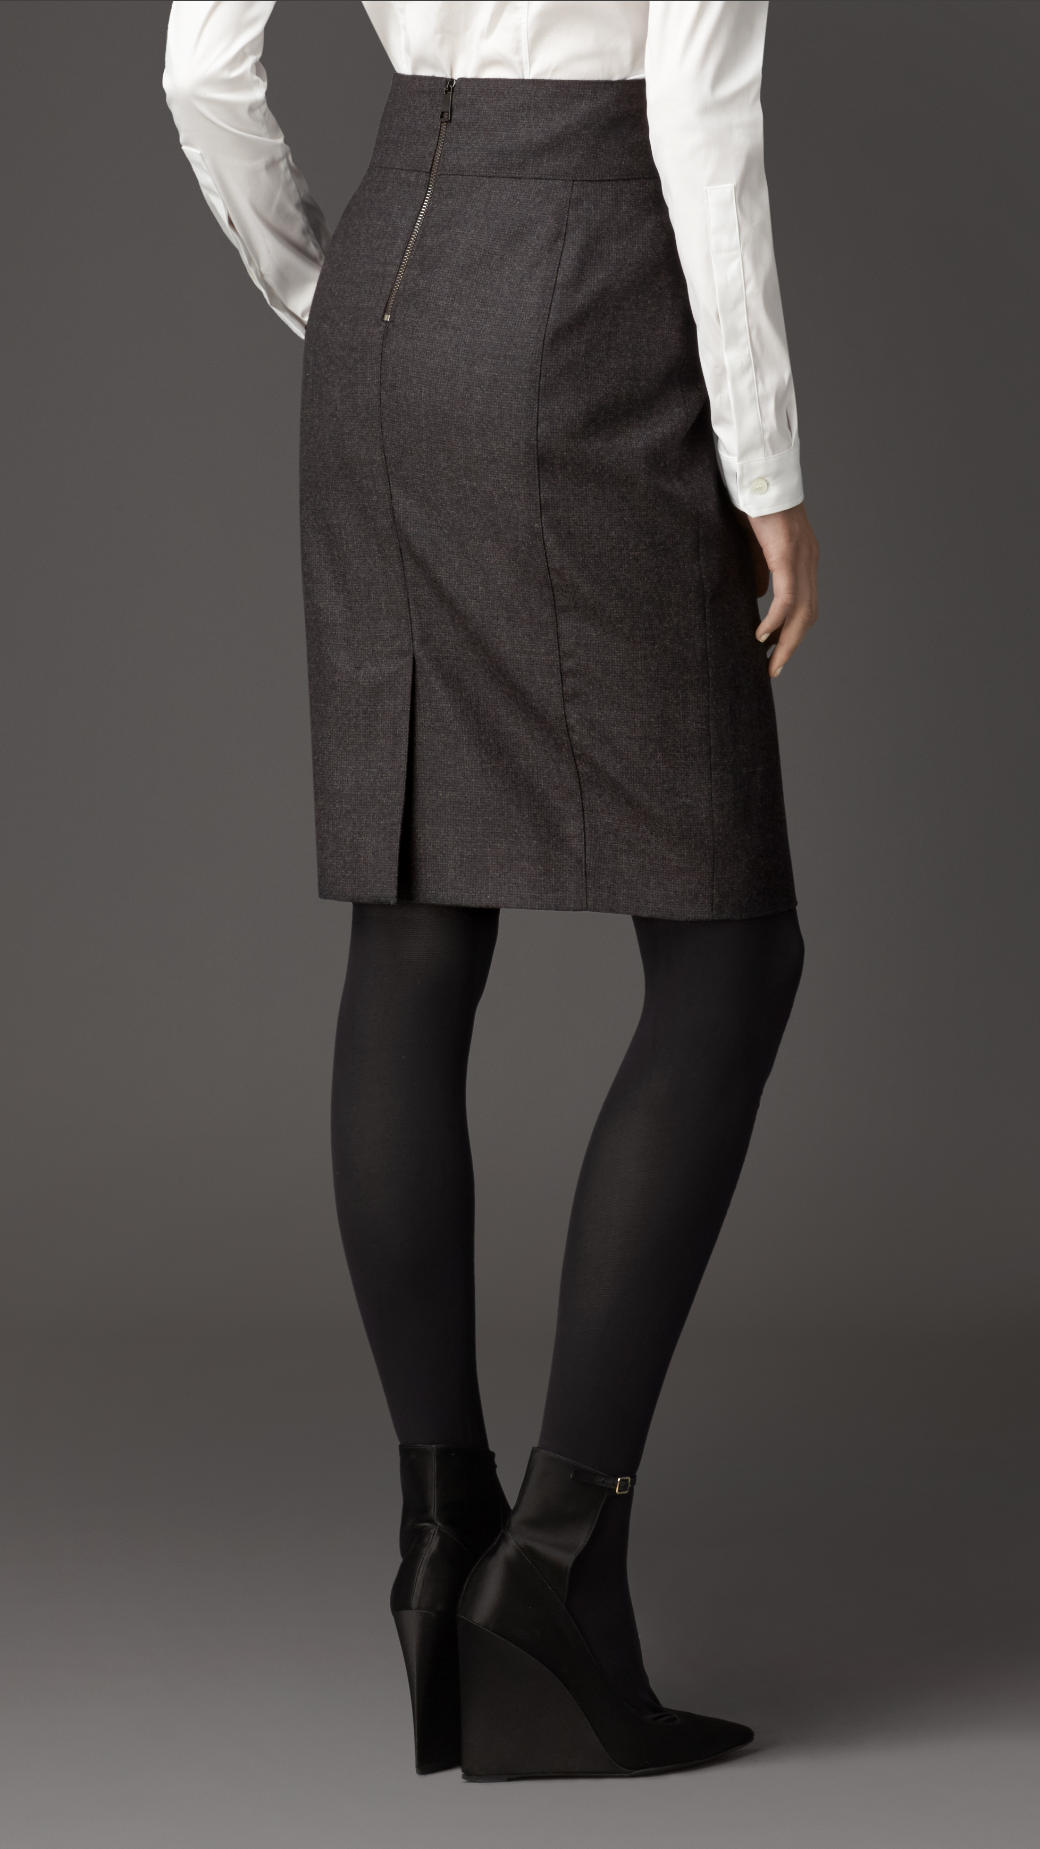 ac8c716244 Burberry Micro-check Wool Flannel Pencil Skirt in Gray - Lyst